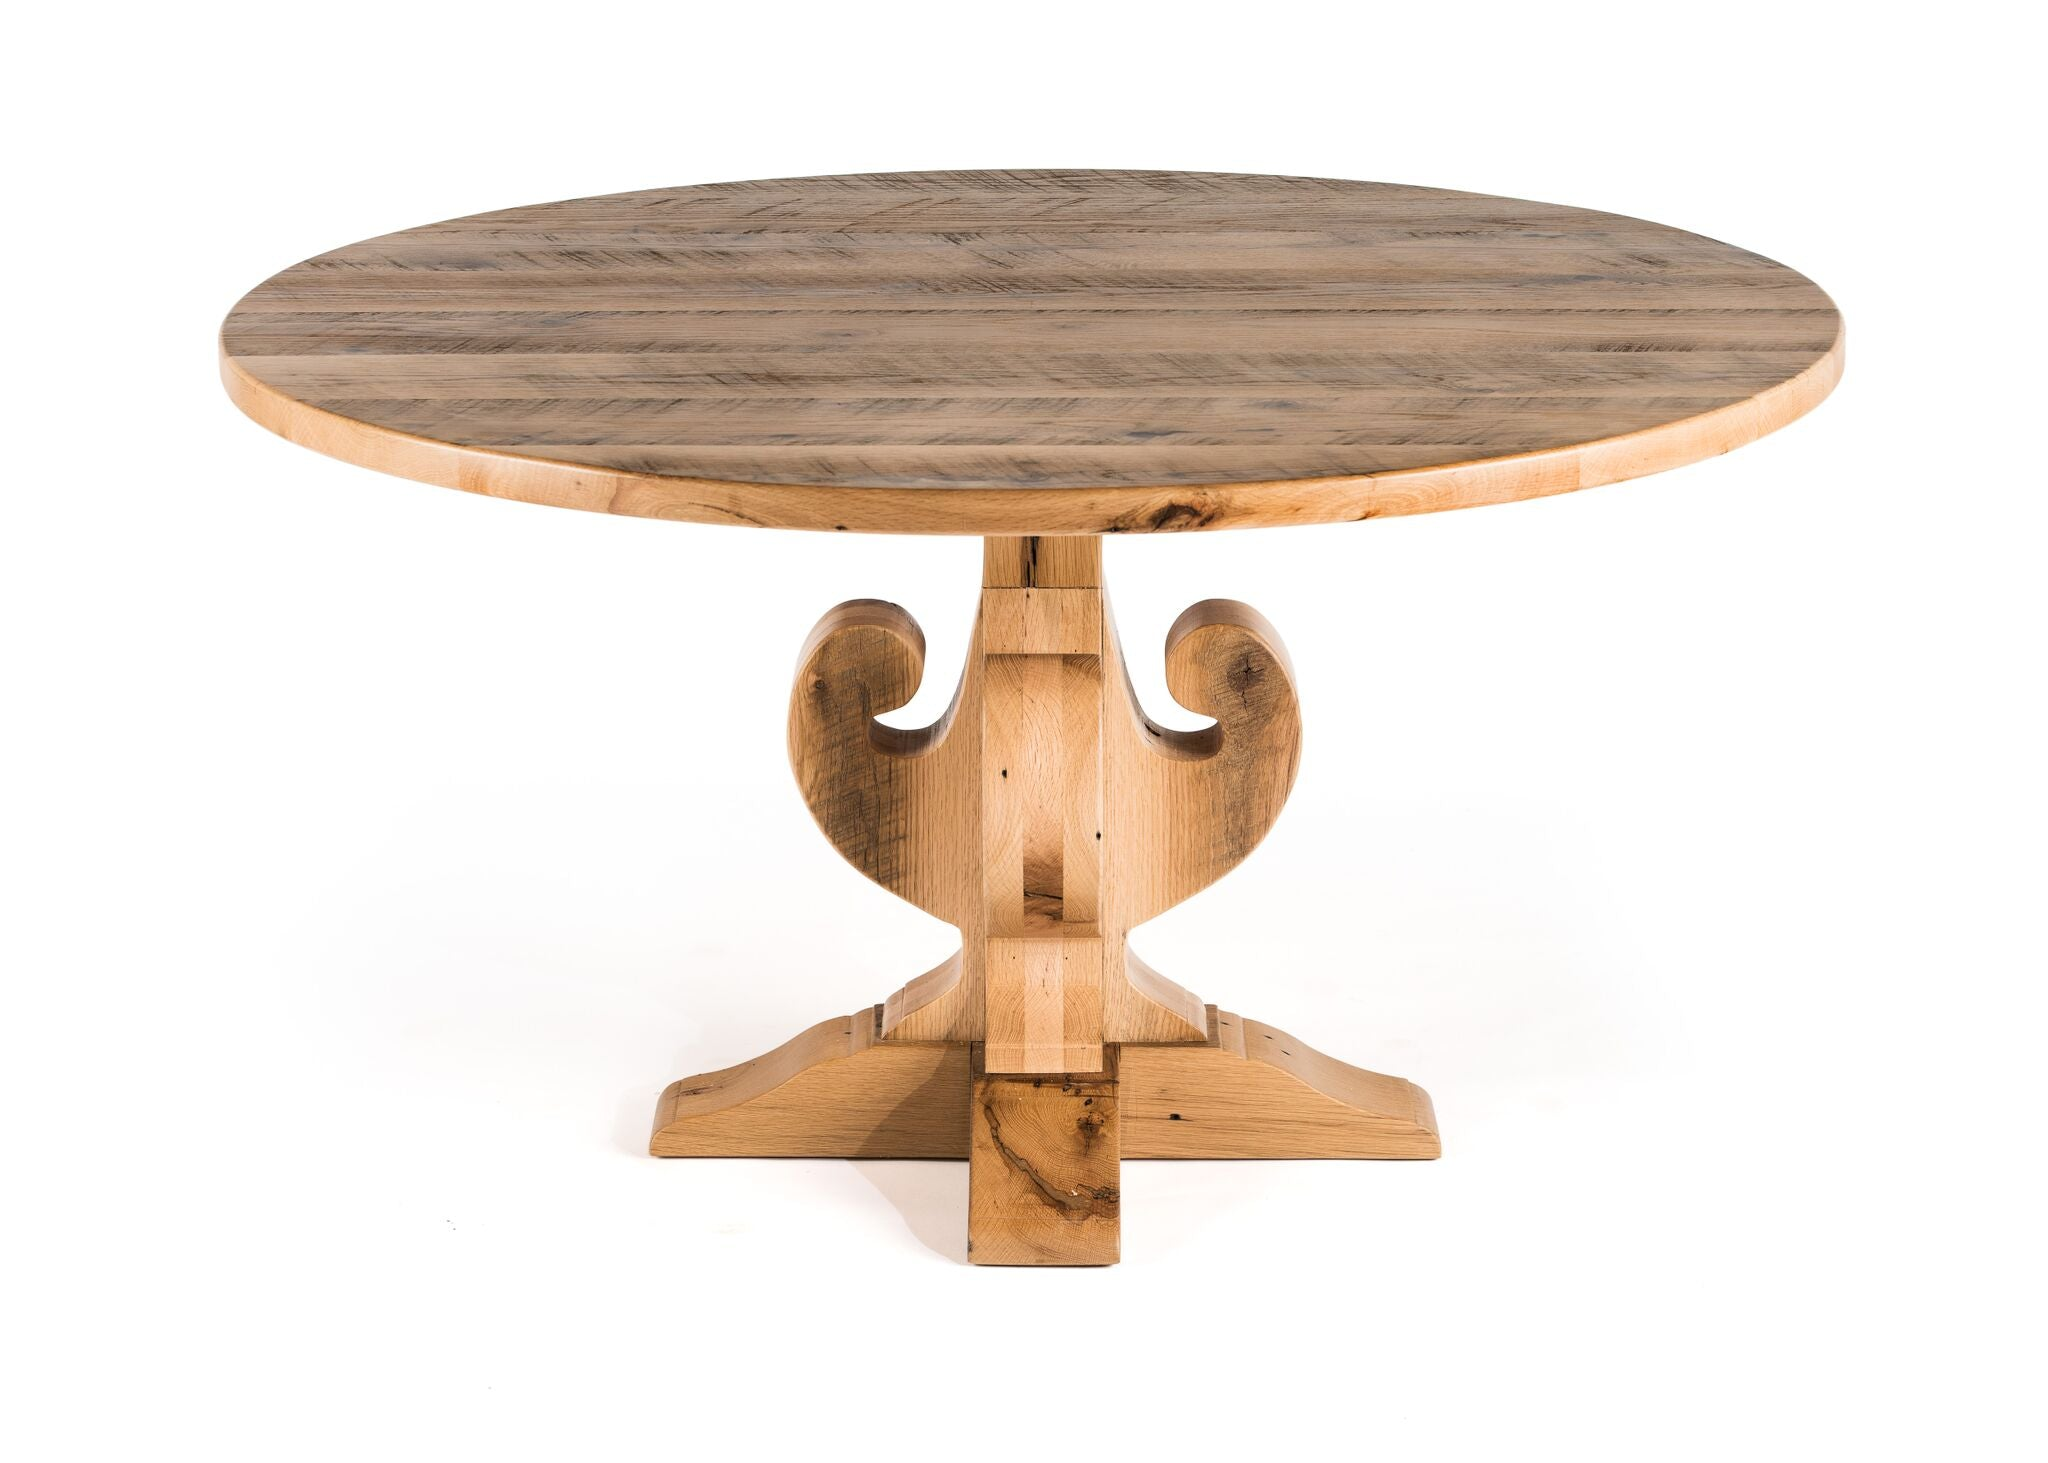 "Round Wood Tables | Farifield Trestle Table | Natural Ash | Natural Ash | Diameter 42 |  Height 30 | 1.5"" Standard kingston-krafts-zinc-tables."